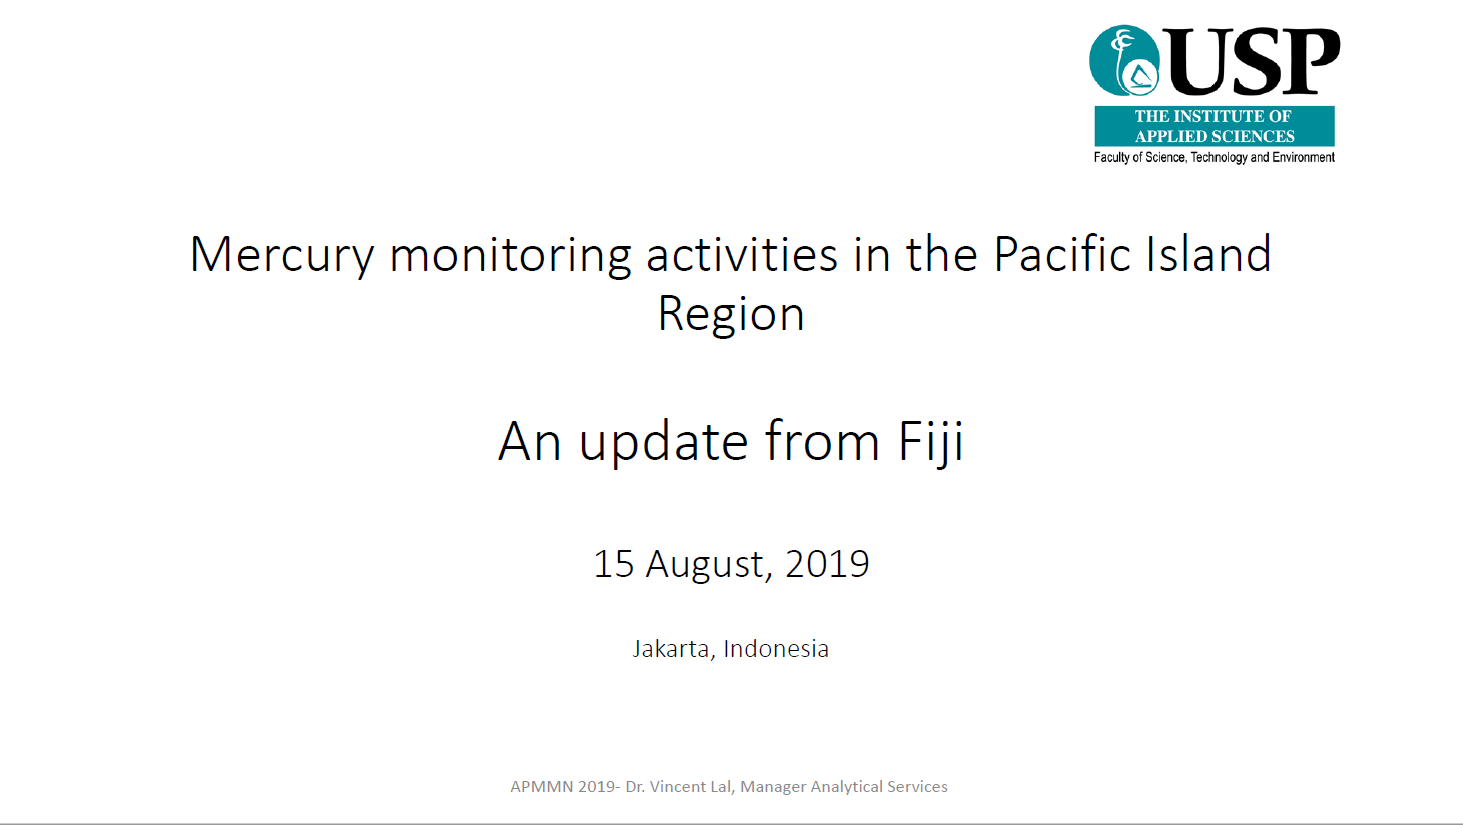 First page of Mercury monitoring activities in the Pacific Island Region - An Update From Fiji